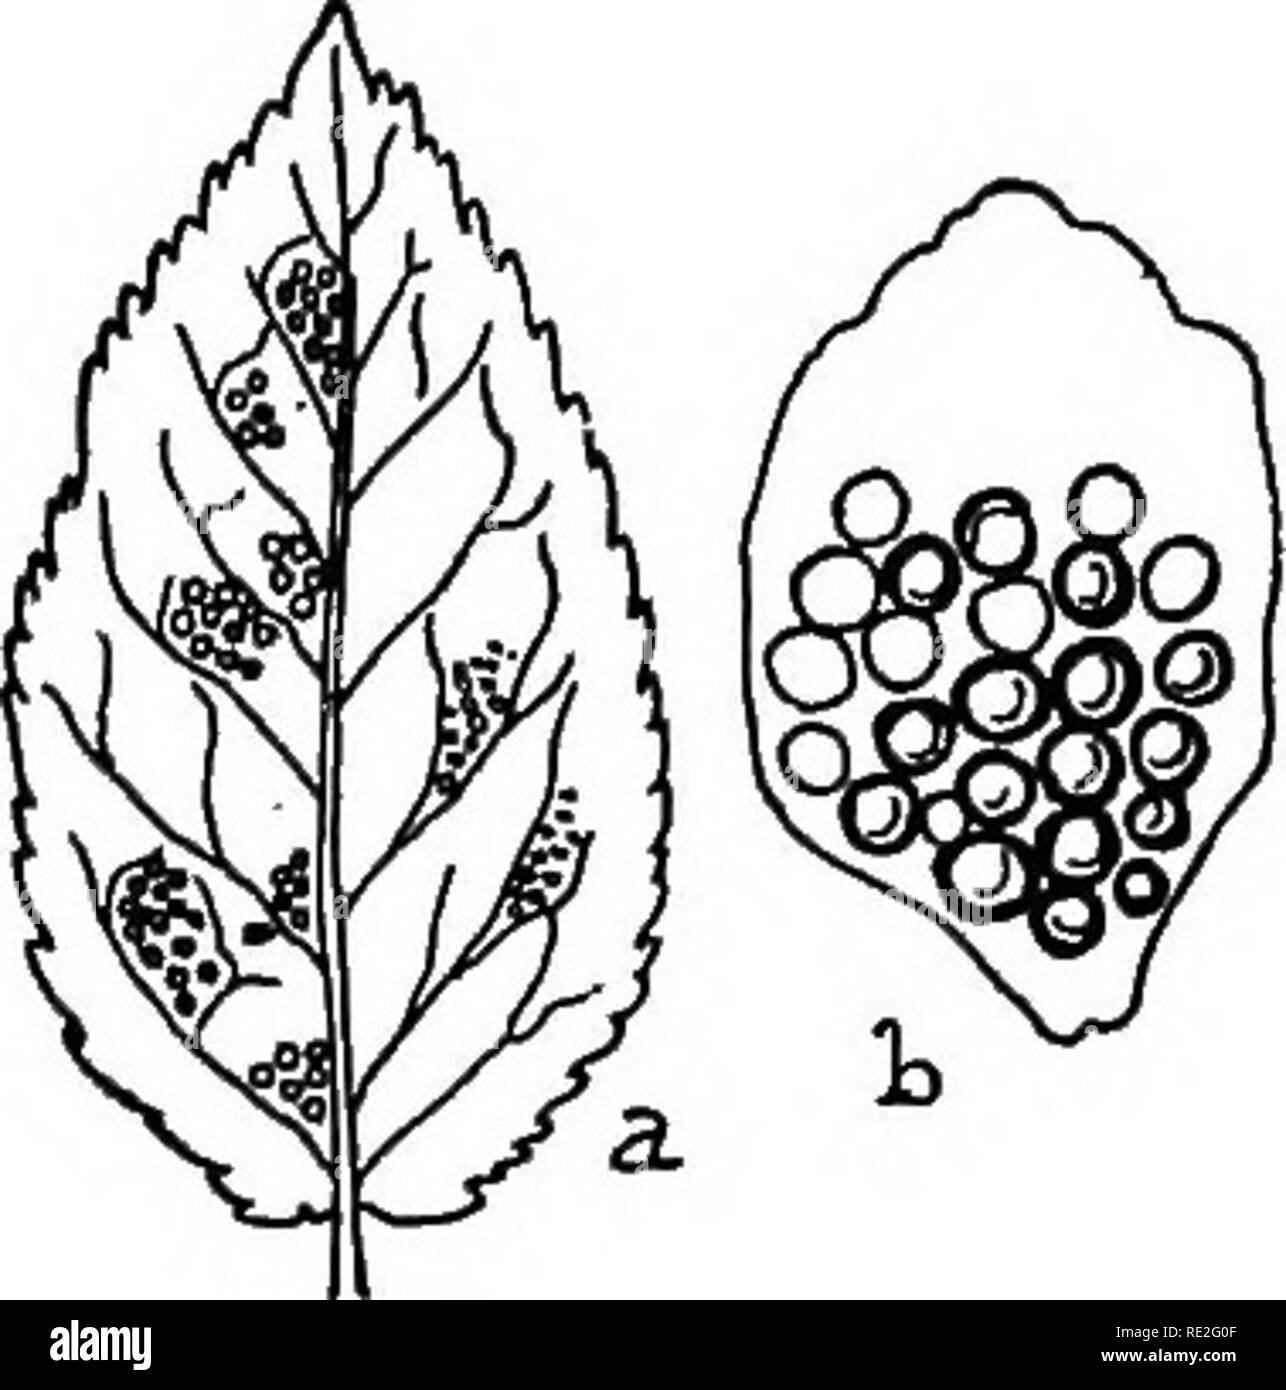 184 black and white stock photos images page 2 alamy Crip Killer Gang Sign the british rust fungi uredinales their biology and classification rust fungi